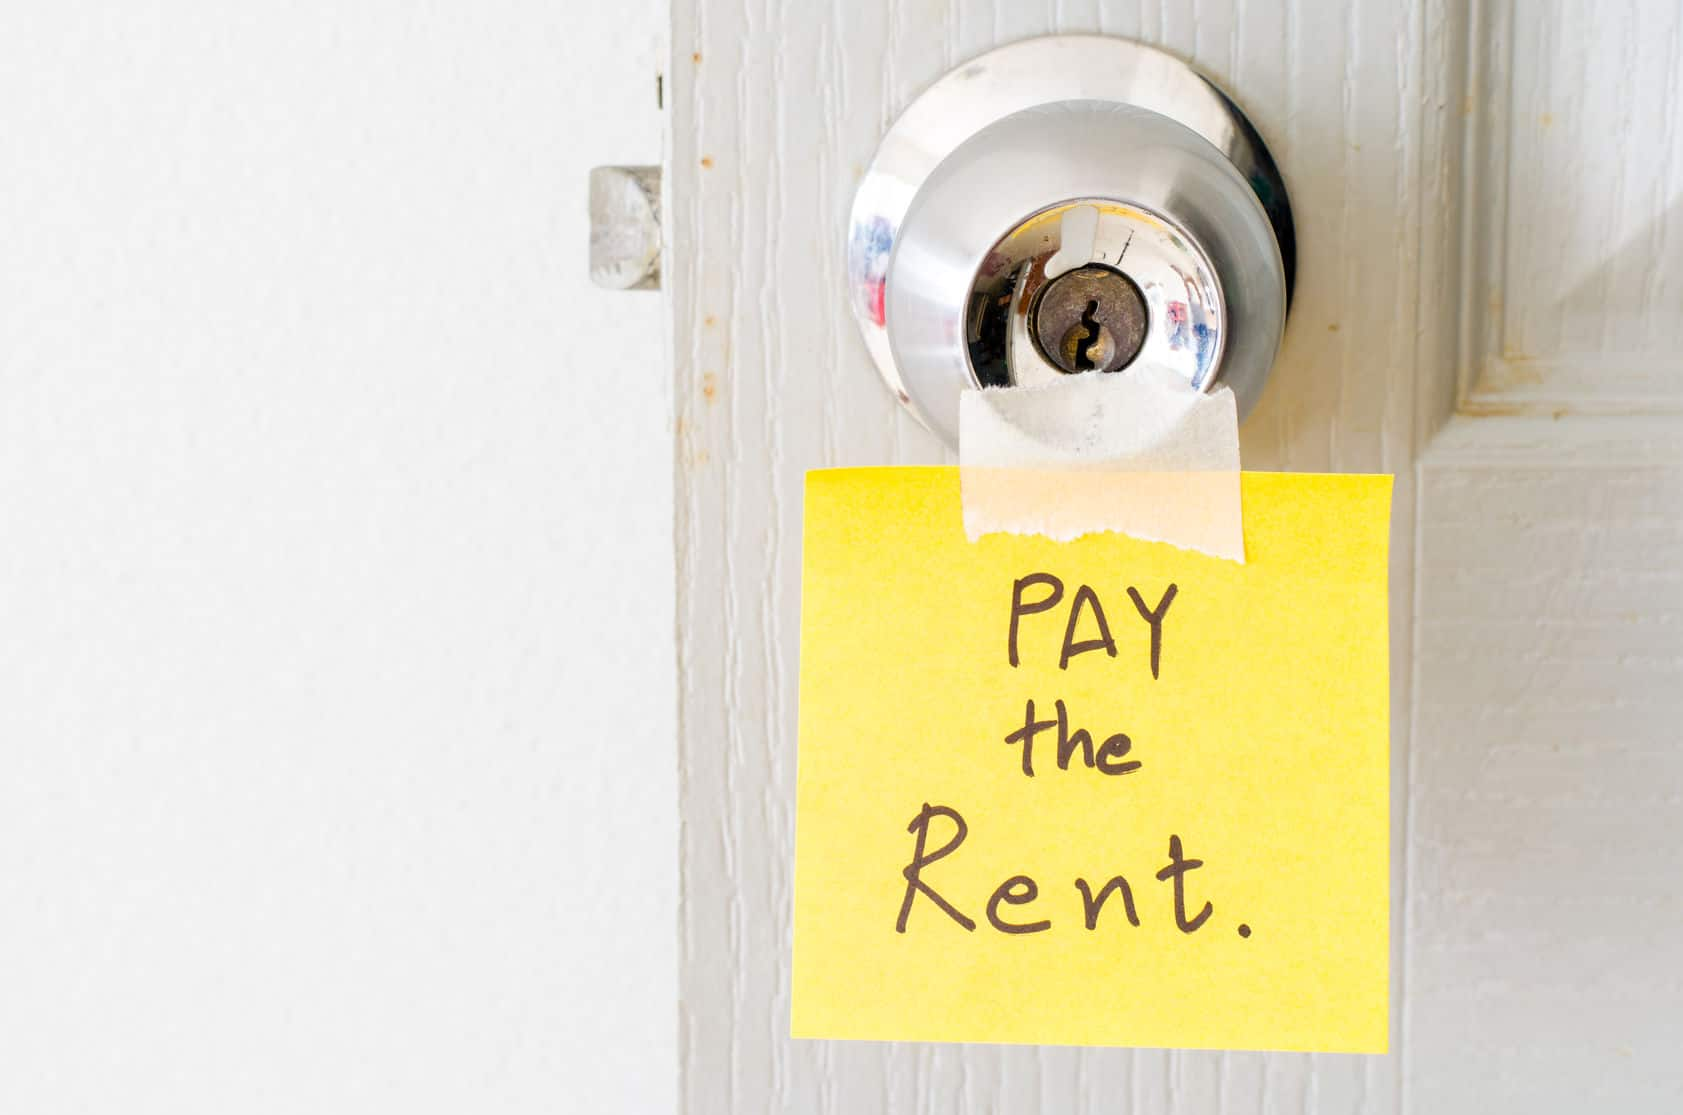 Small Apartment Landlords Worry About Payments as Pandemic Continues